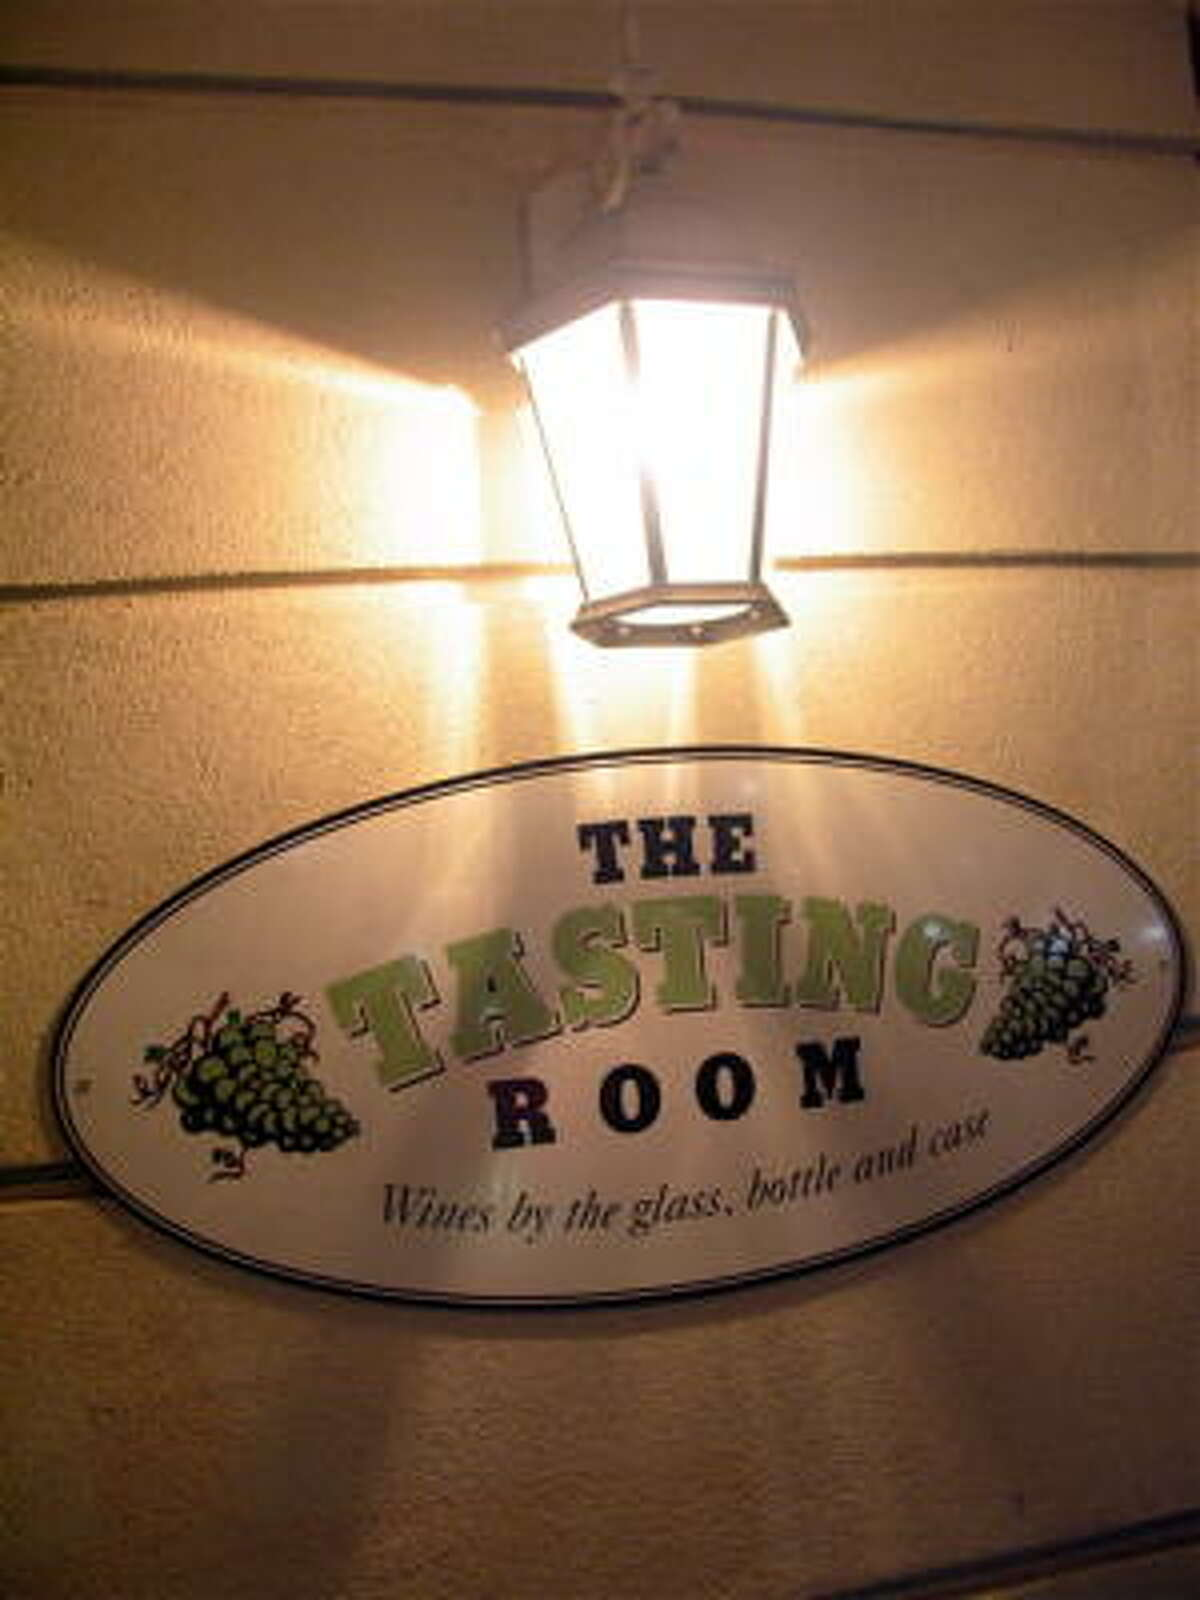 The Tasting Room's combination of a wide selection of wines, hip and attractive crowd and low-key atmosphere makes it a popular spot for the after-work crowd. The Tasting Room Uptown Park is located at 1101 Uptown Park Blvd.